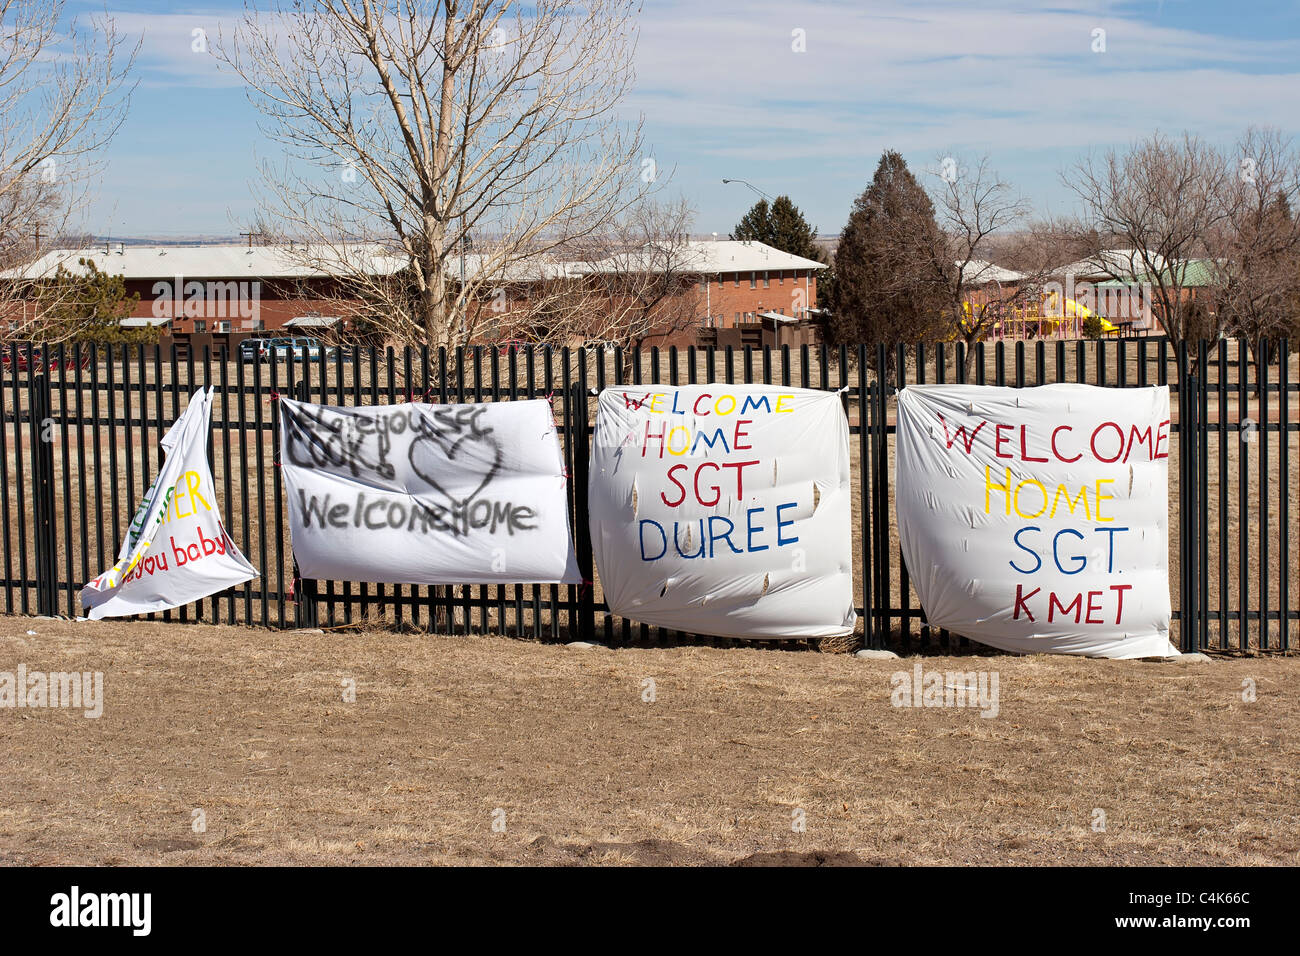 Fort Carson, CO - Sheets with welcome home messages drape a fence at the entrance of the Fort Carson army base. - Stock Image